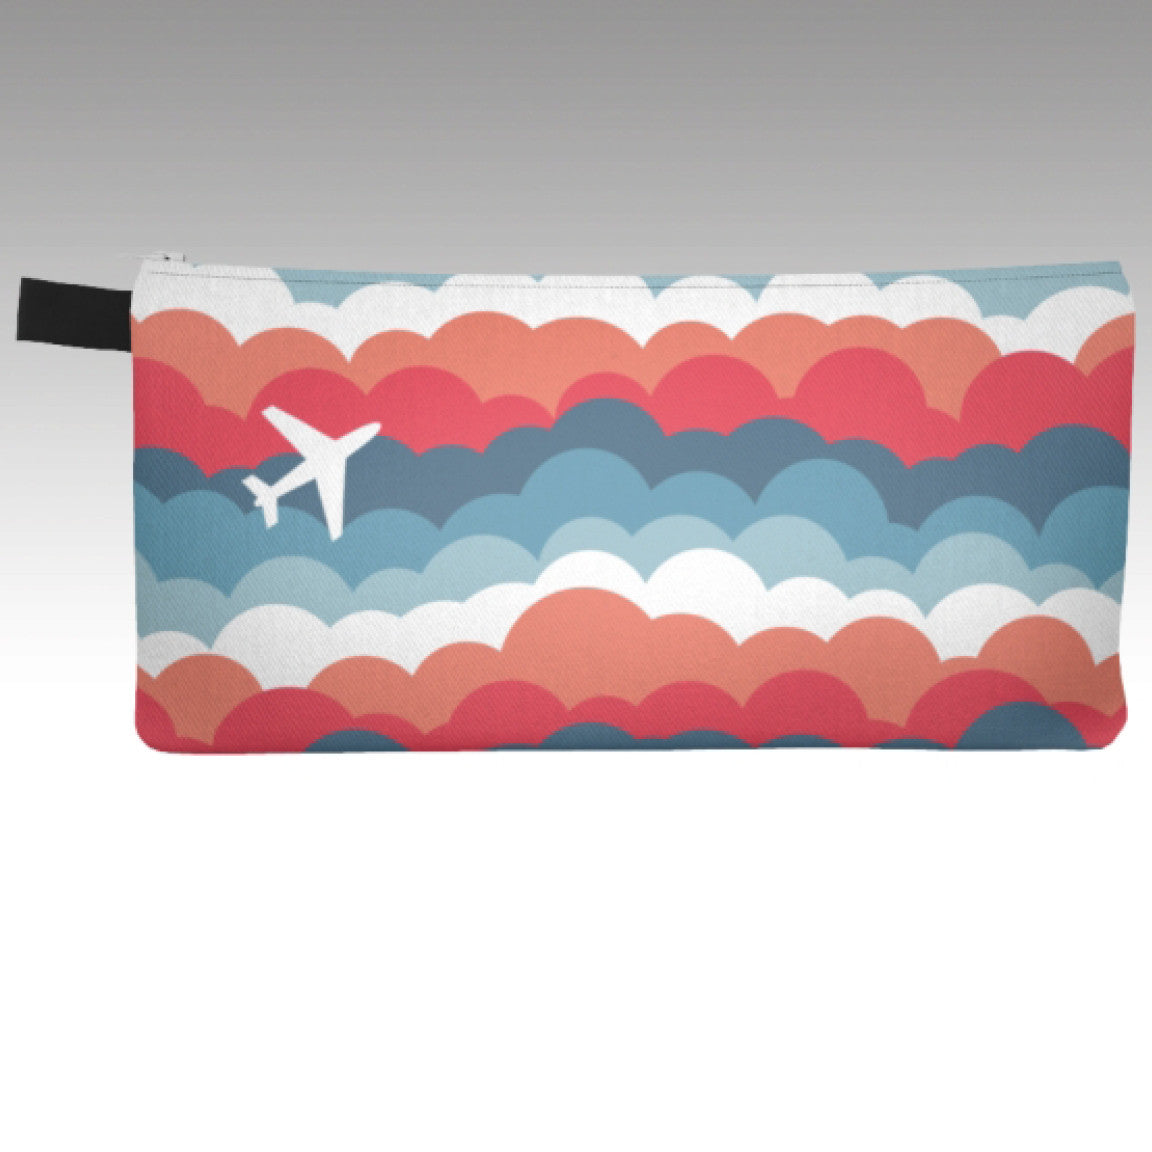 Pencil Pouch with One Plane Jane signature cloud design.  A single airplane to show your love for aviation and travel. Perfect for make-up bag, coin purse, phone carrying case.